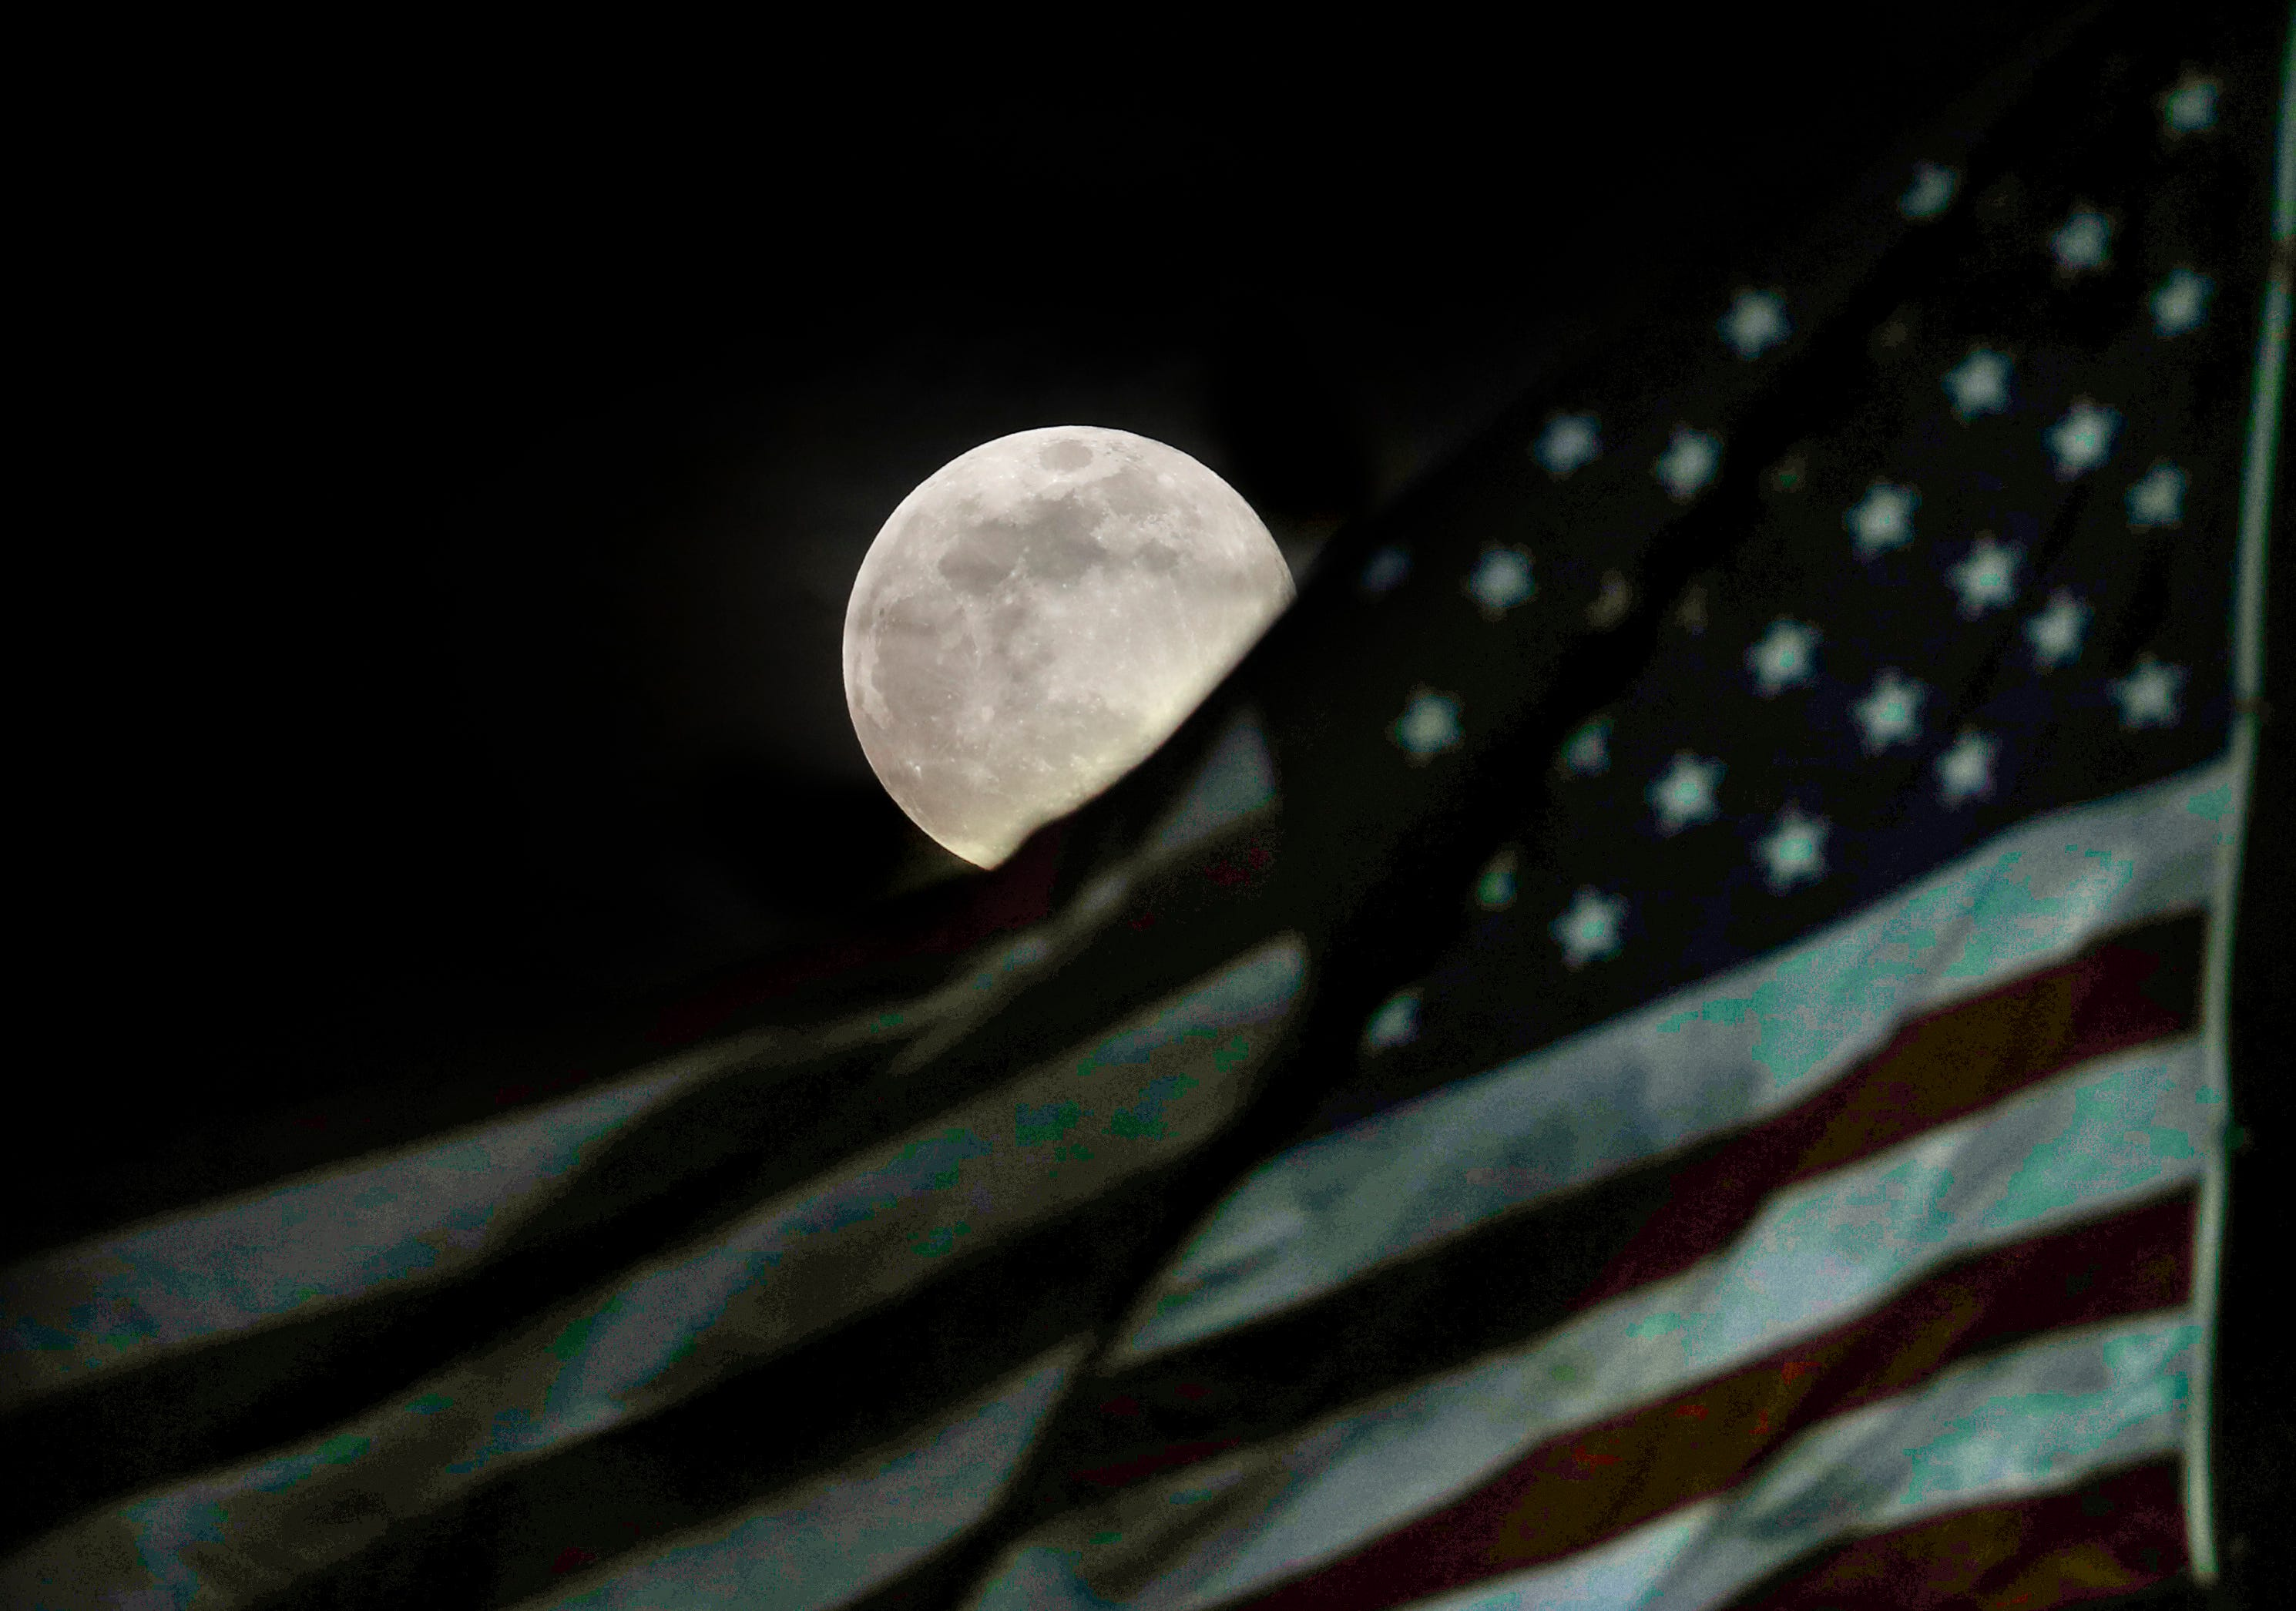 Trump executive order calls for commercializing the solar system, mining the moon